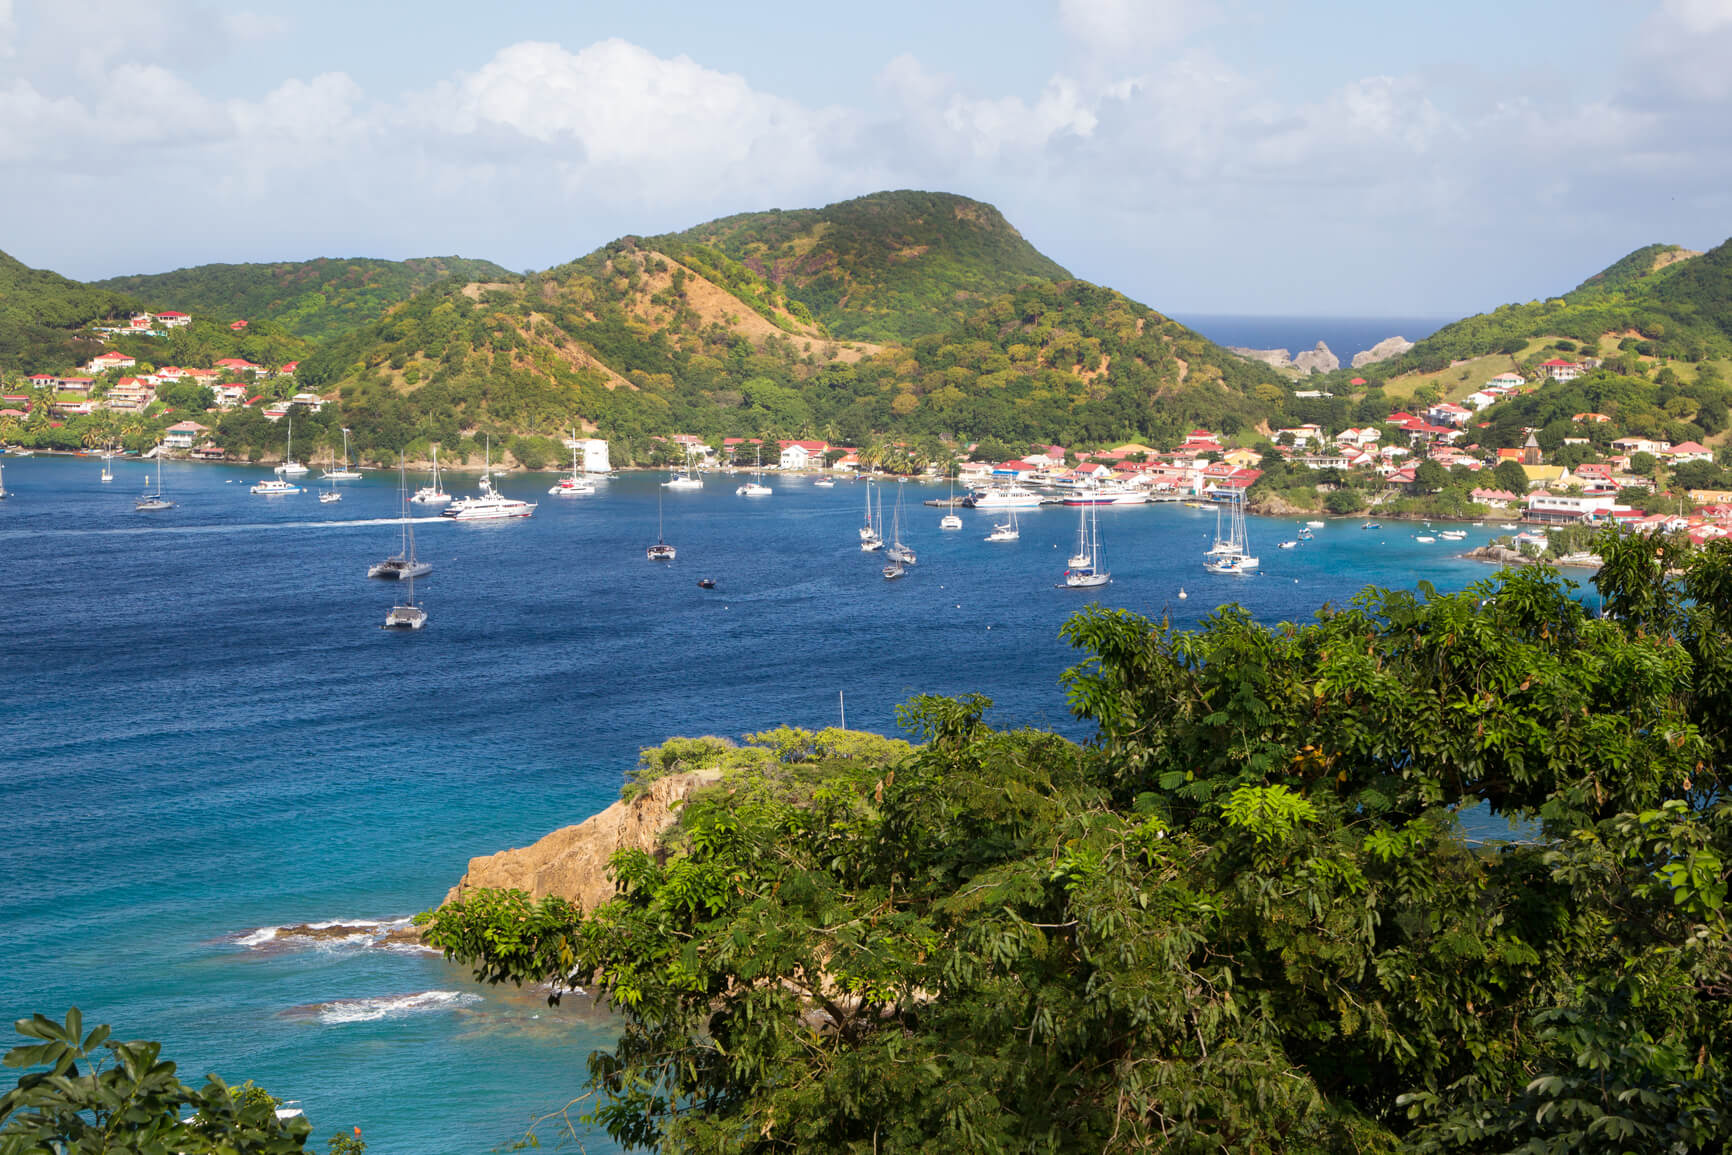 Non-stop from Brussels, Belgium to Martinique or Guadeloupe for only €373 roundtrip